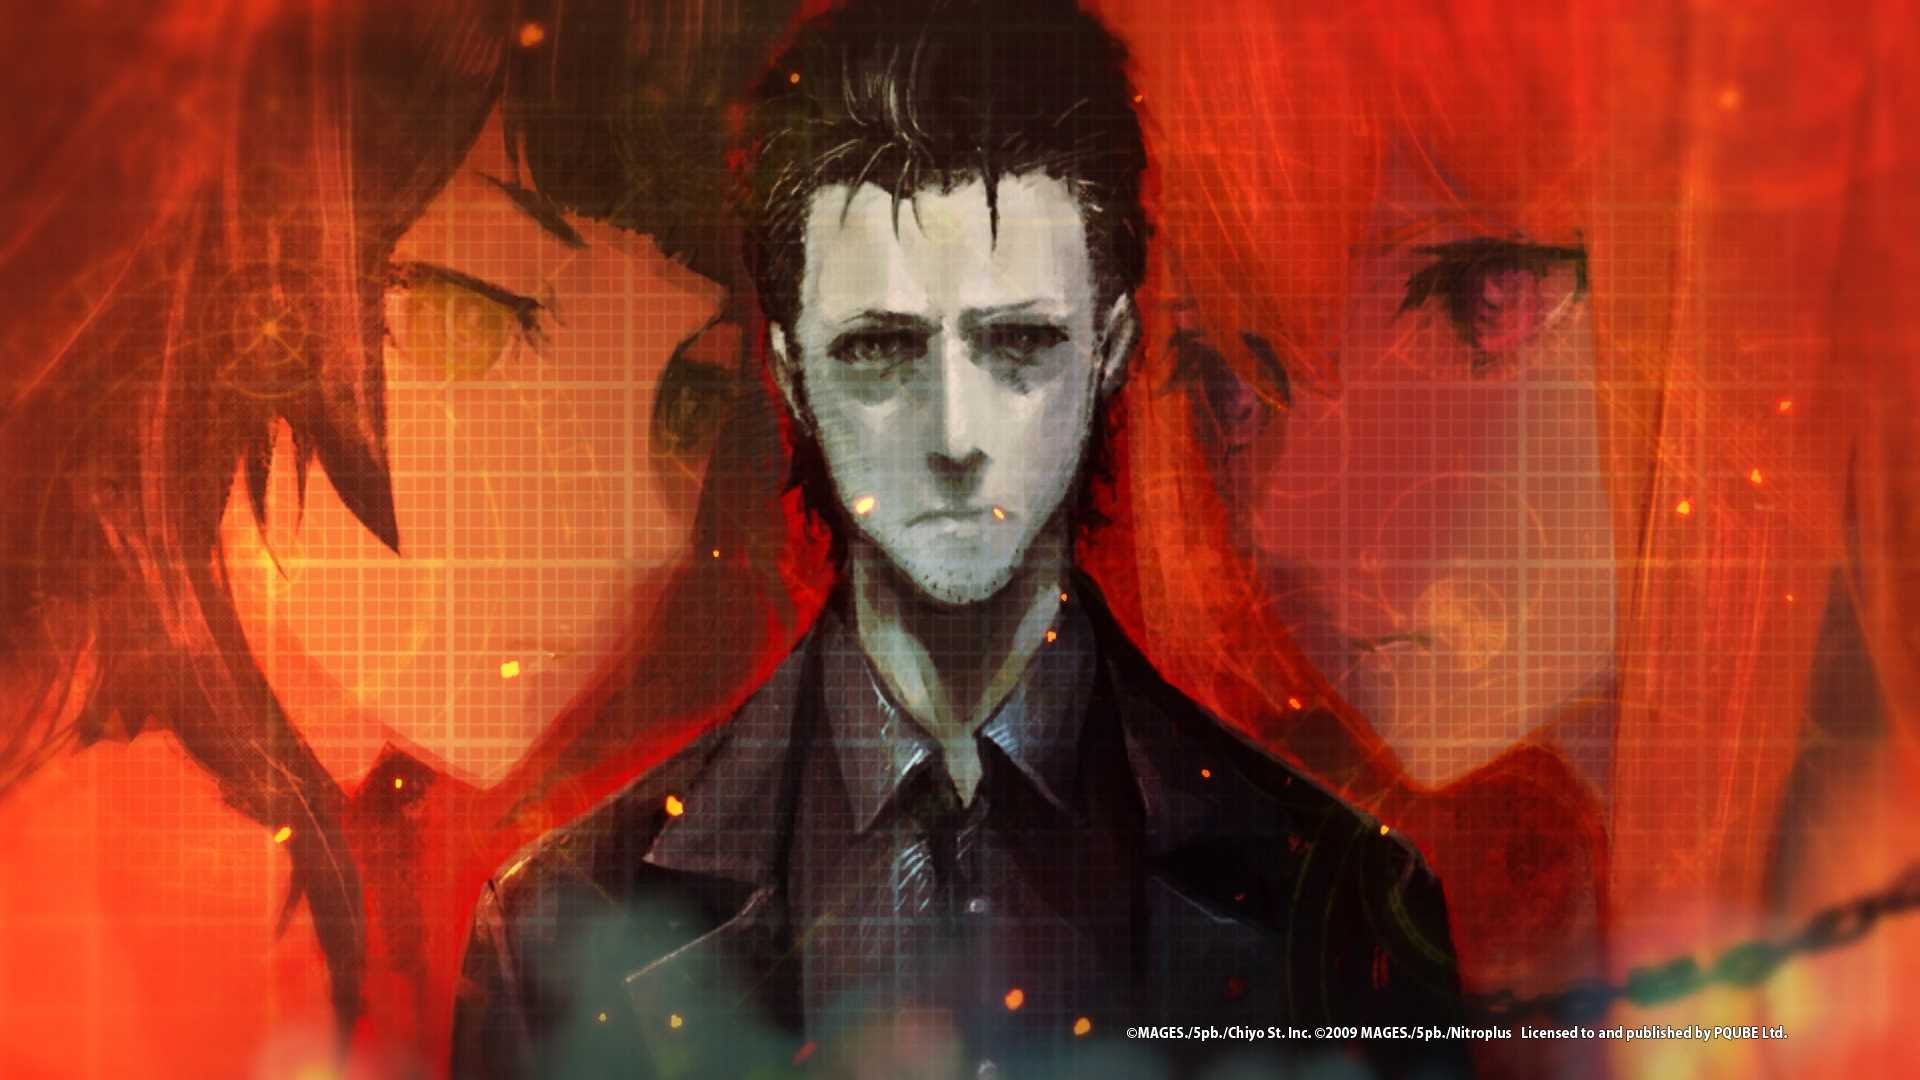 Steins Gate 0 Anime Visual Character Designs Revealed Vgculturehq